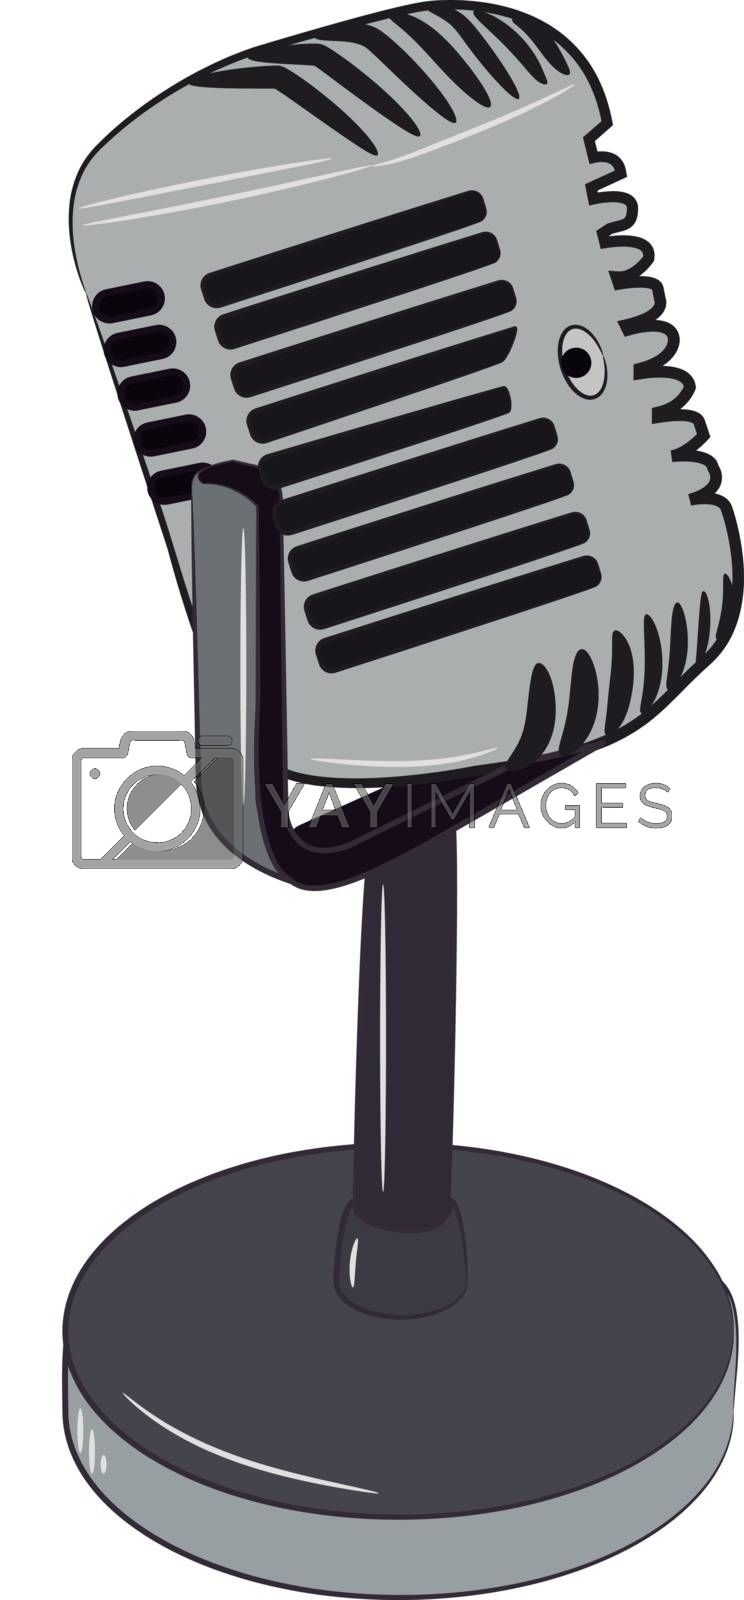 A grey microphone with stand to speak or record music vector color drawing or illustration